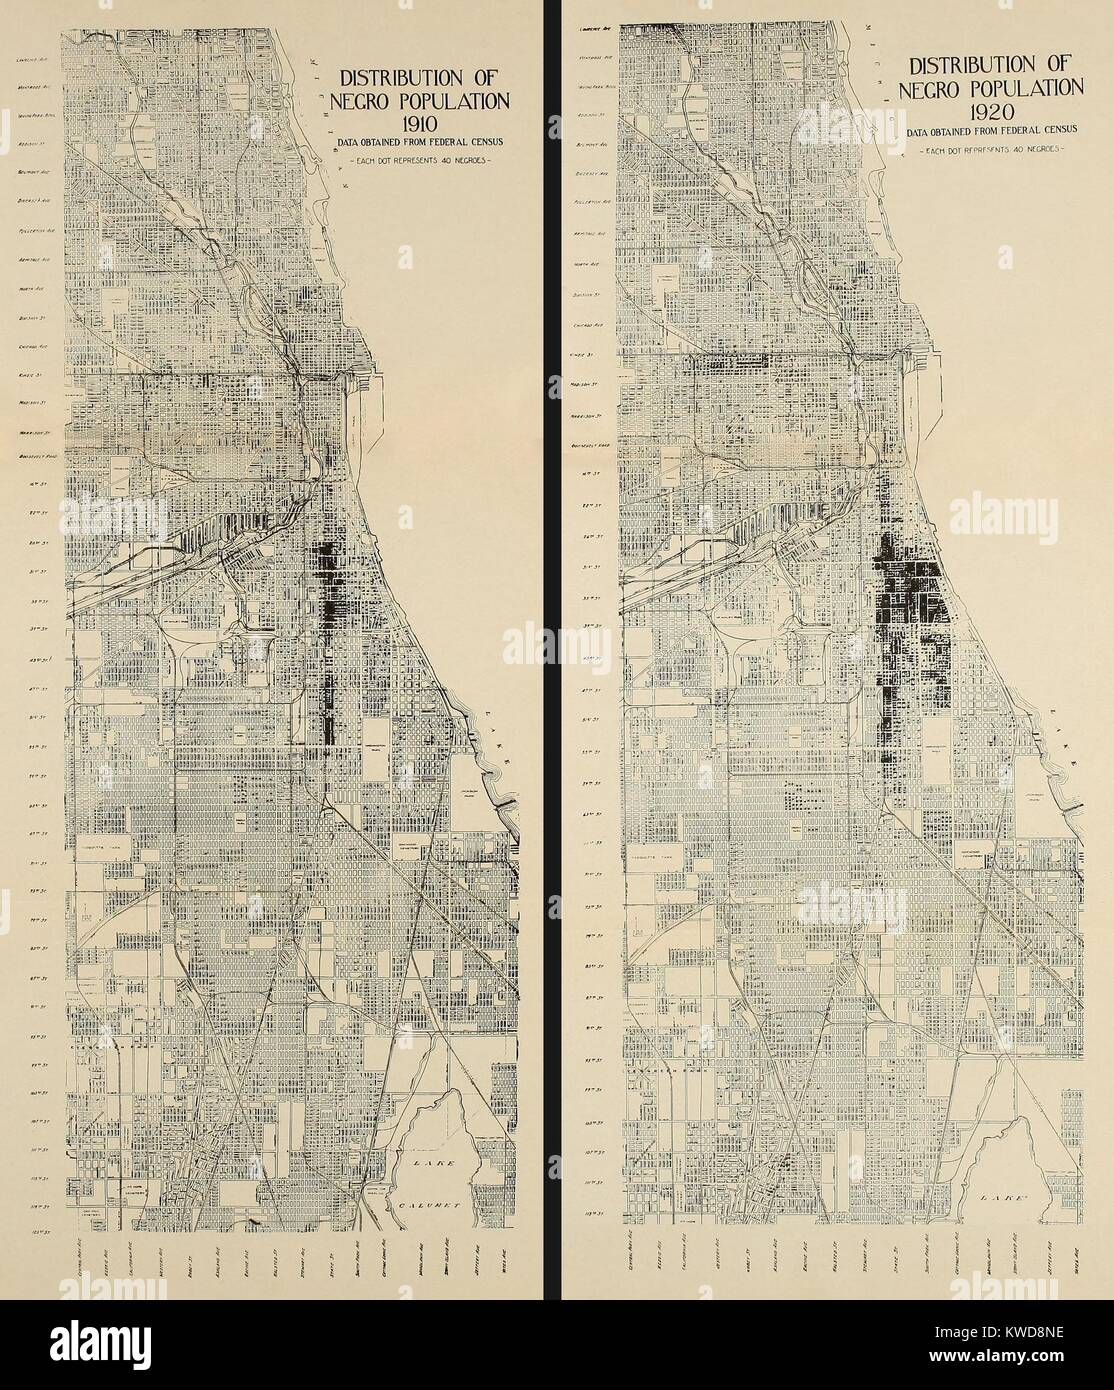 Map Of America Showing Chicago.Distribution Of African American Population In Chicago In 1910 And